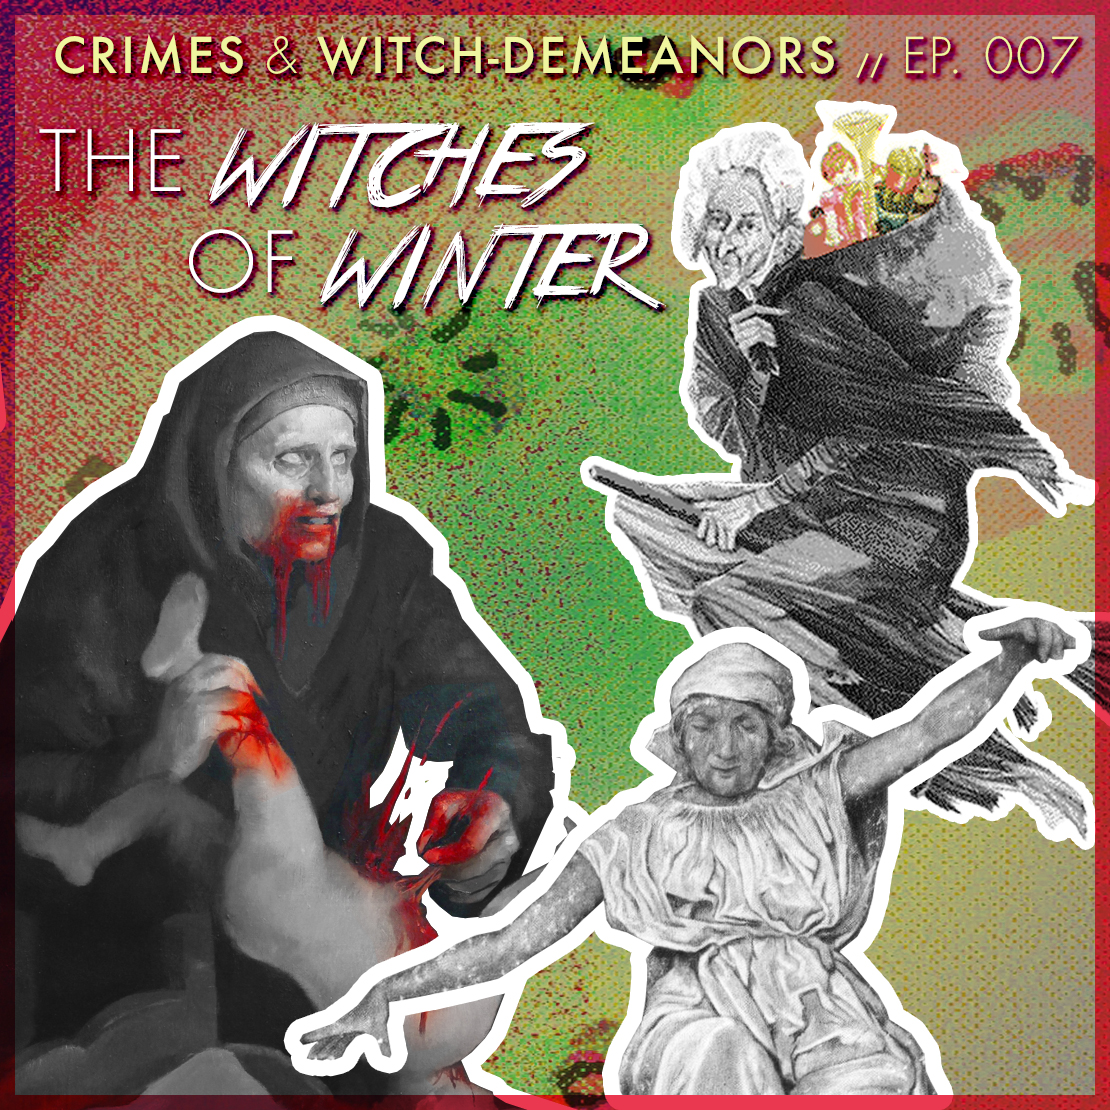 Episode 007: The Witches of Winter (La Befana, Frau Holle, Perchta, Gryla, & More)